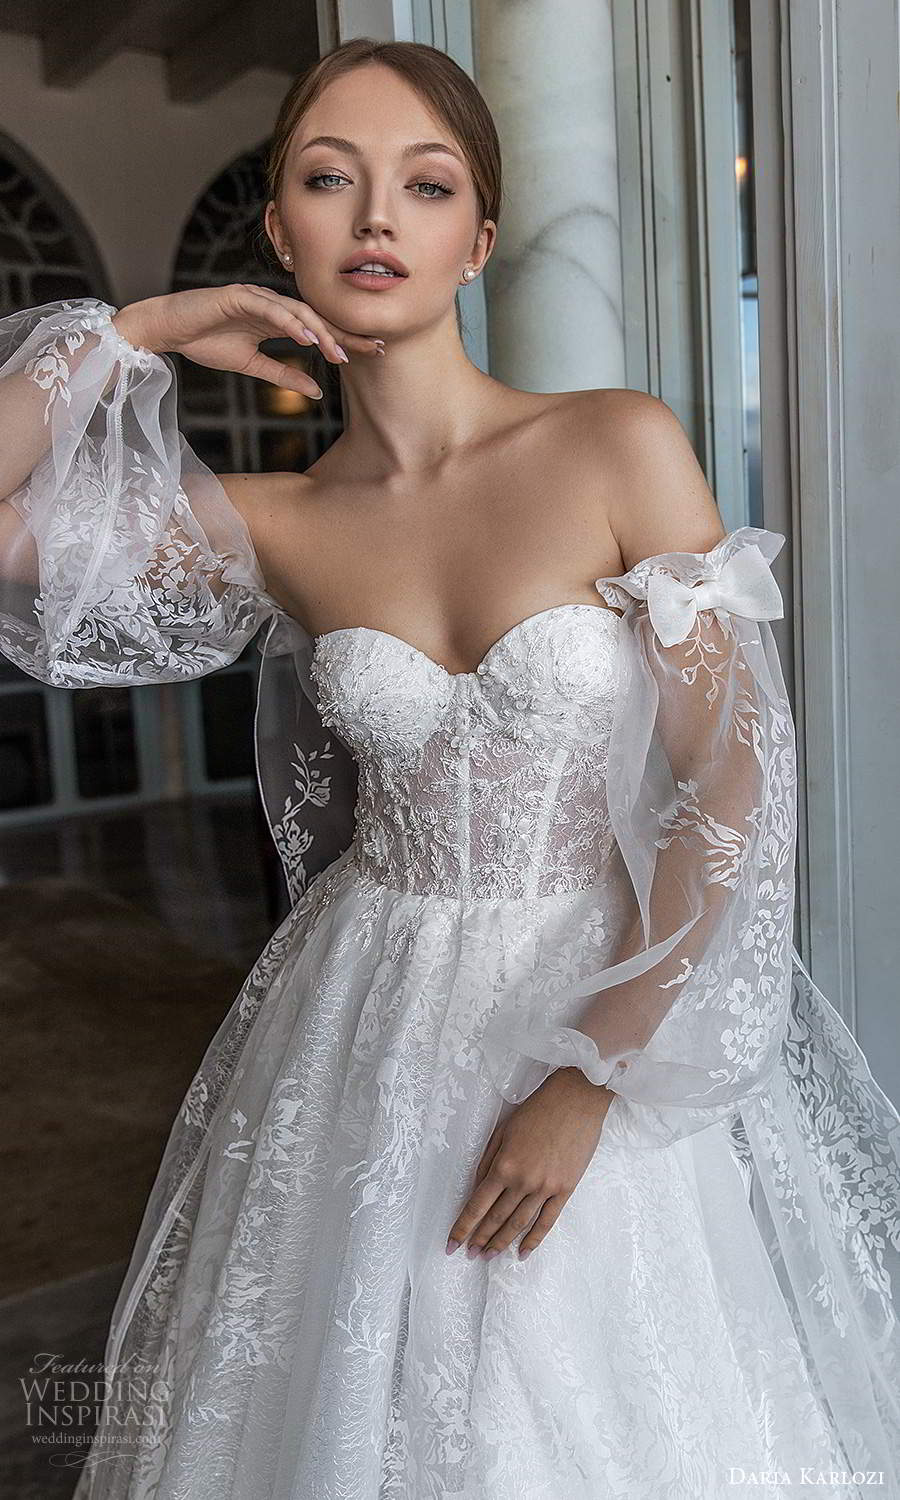 daria karlozi 2021 bridal detached sheer bishop sleeves strapless sweetheart embellished lace a line ball gown wedding dress chapel train (5) zv